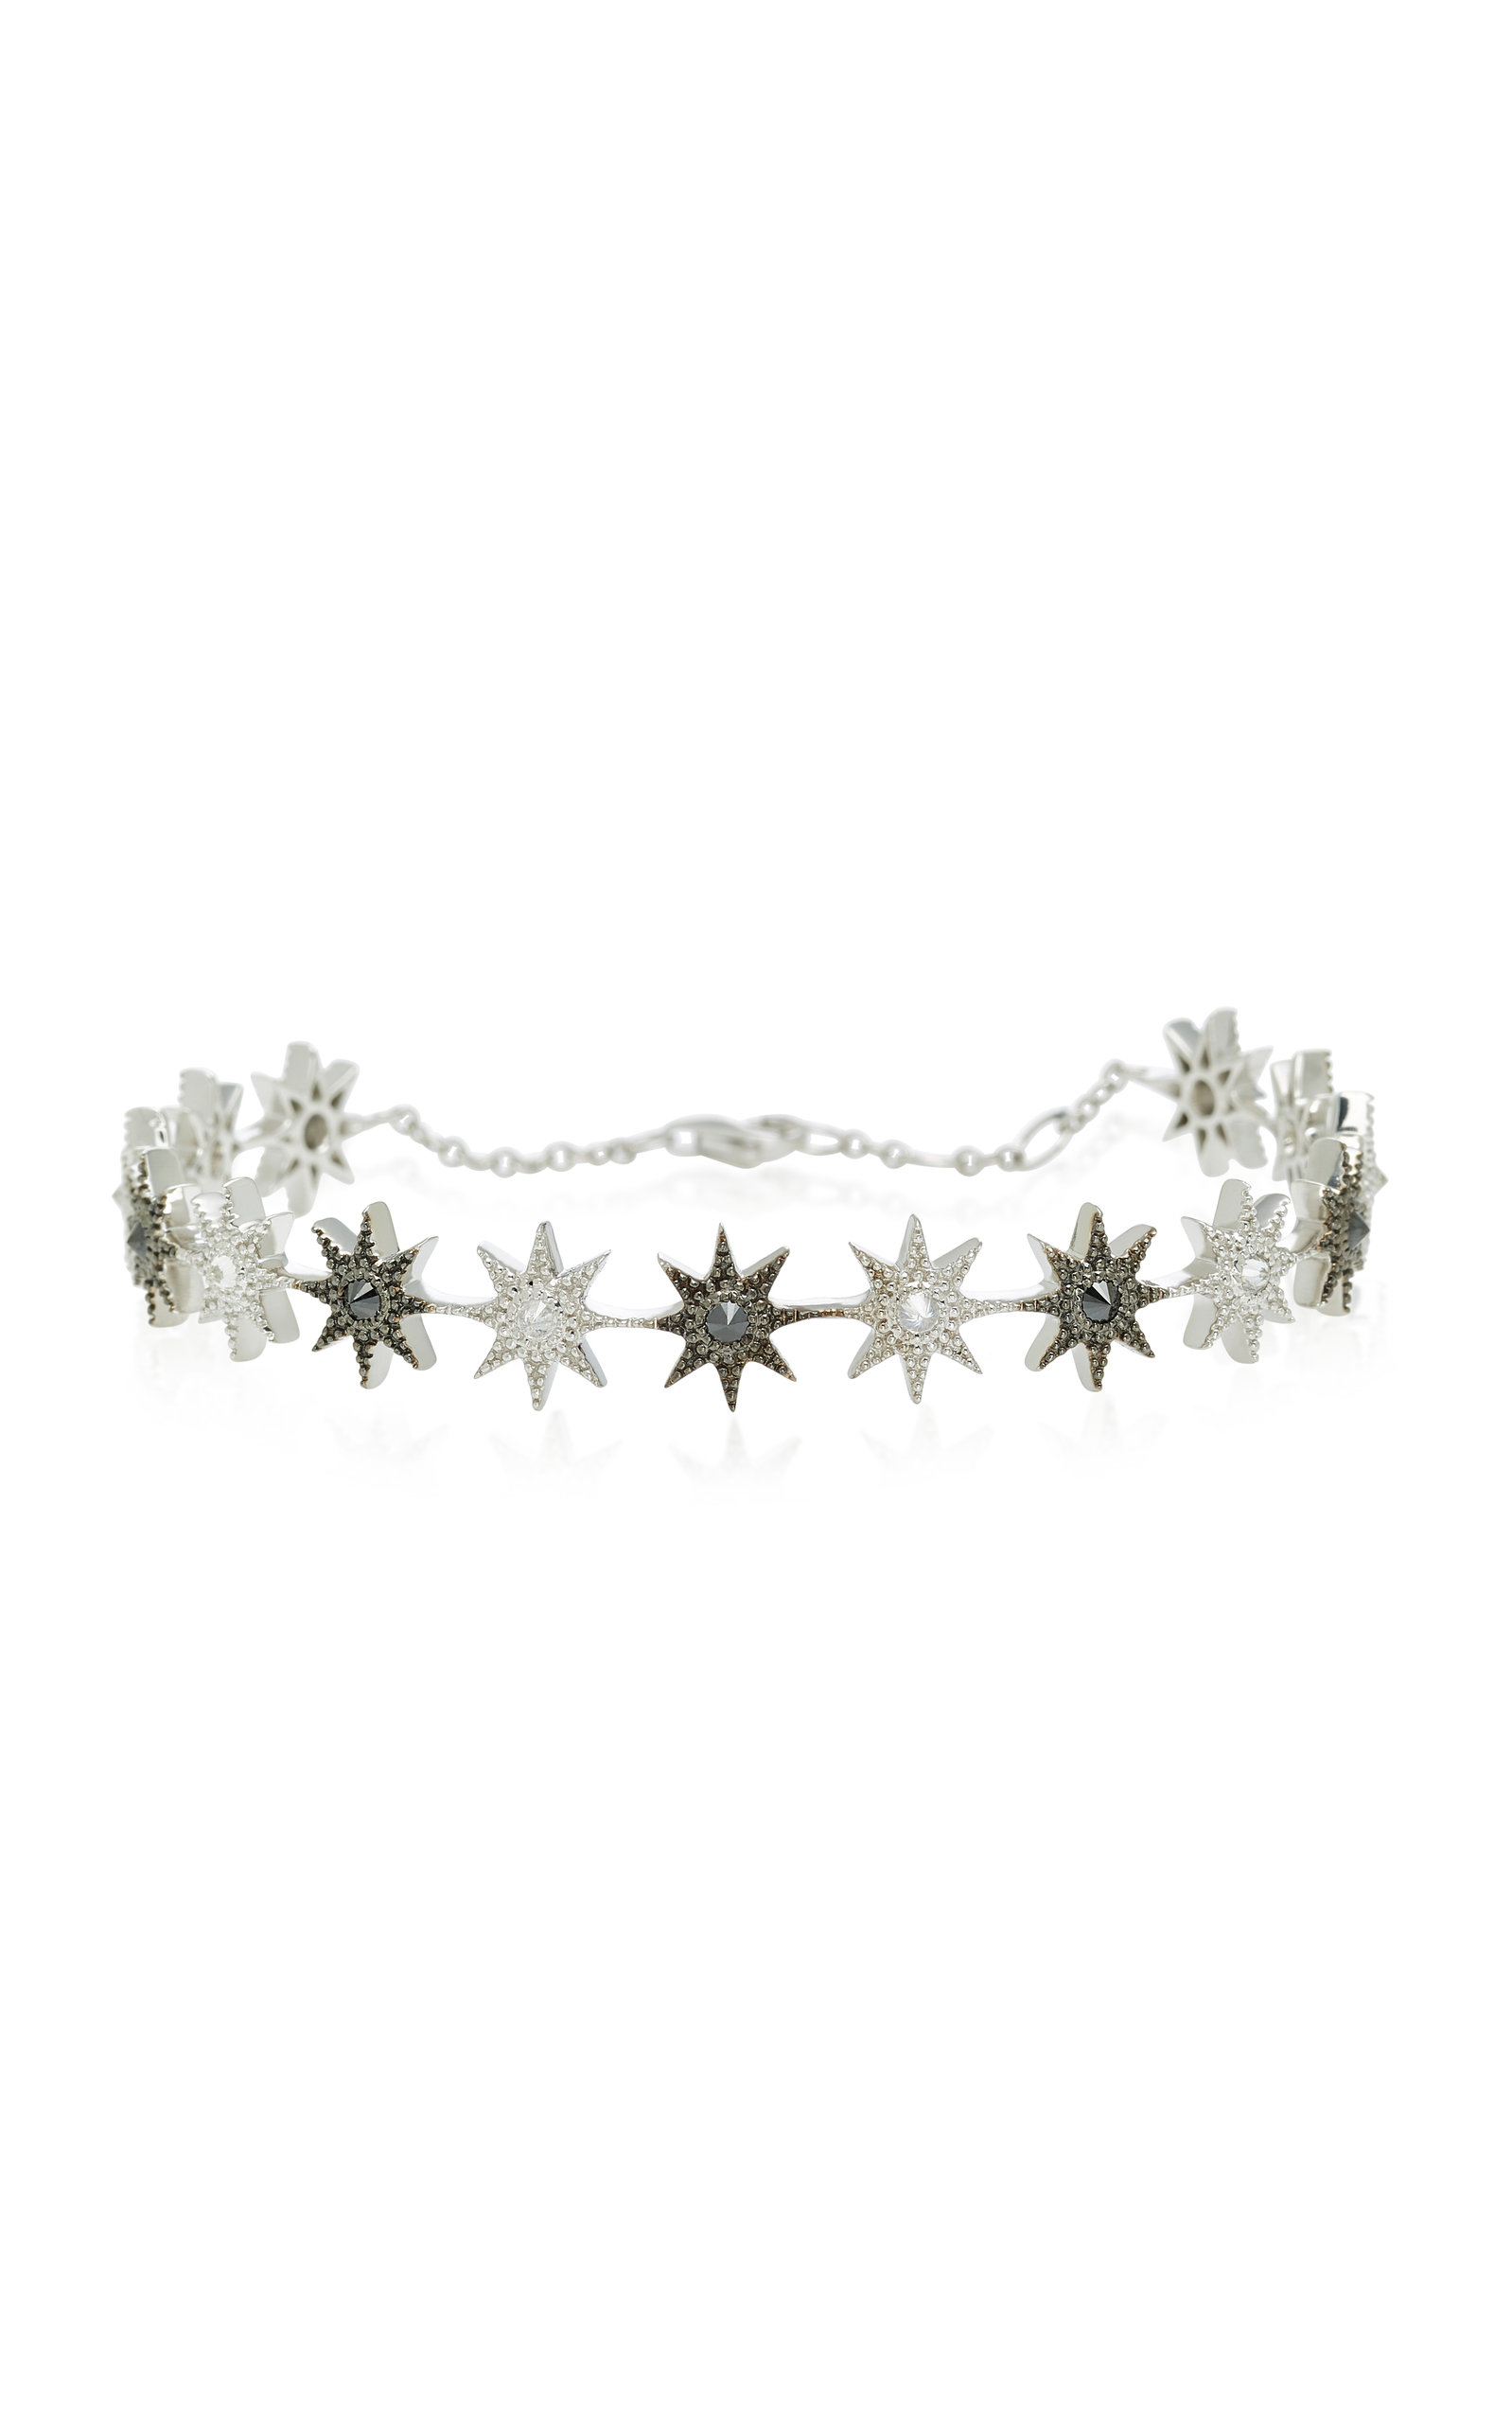 COLETTE JEWELRY GLOW STAR 18K BLACK AND WHITE GOLD DIAMOND BRACELET